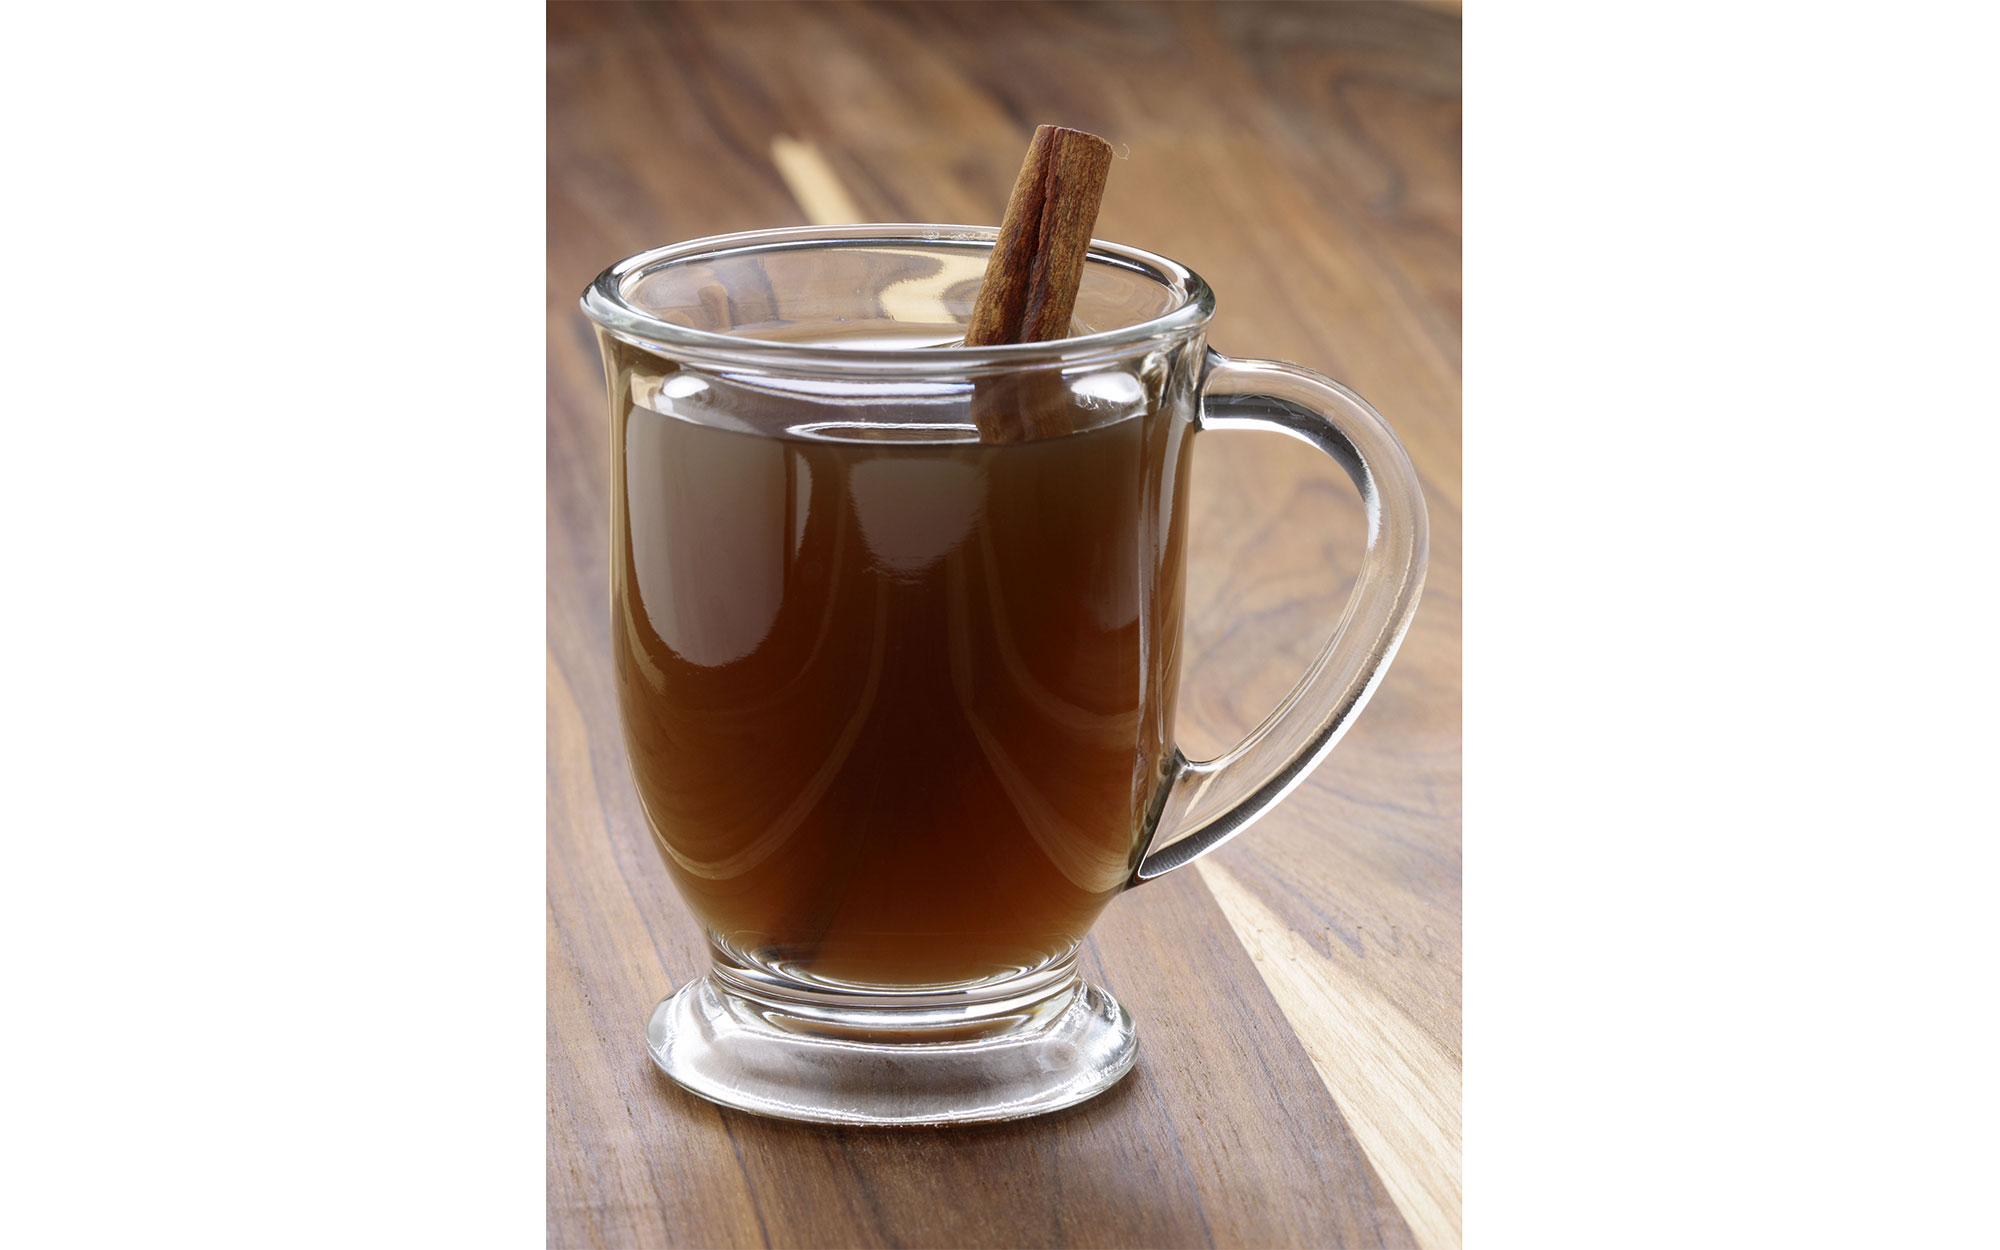 D2YN72 Nothing beats a mug of hot cider on a cold winter day. Apple Cider the coziest drink for the hollydays